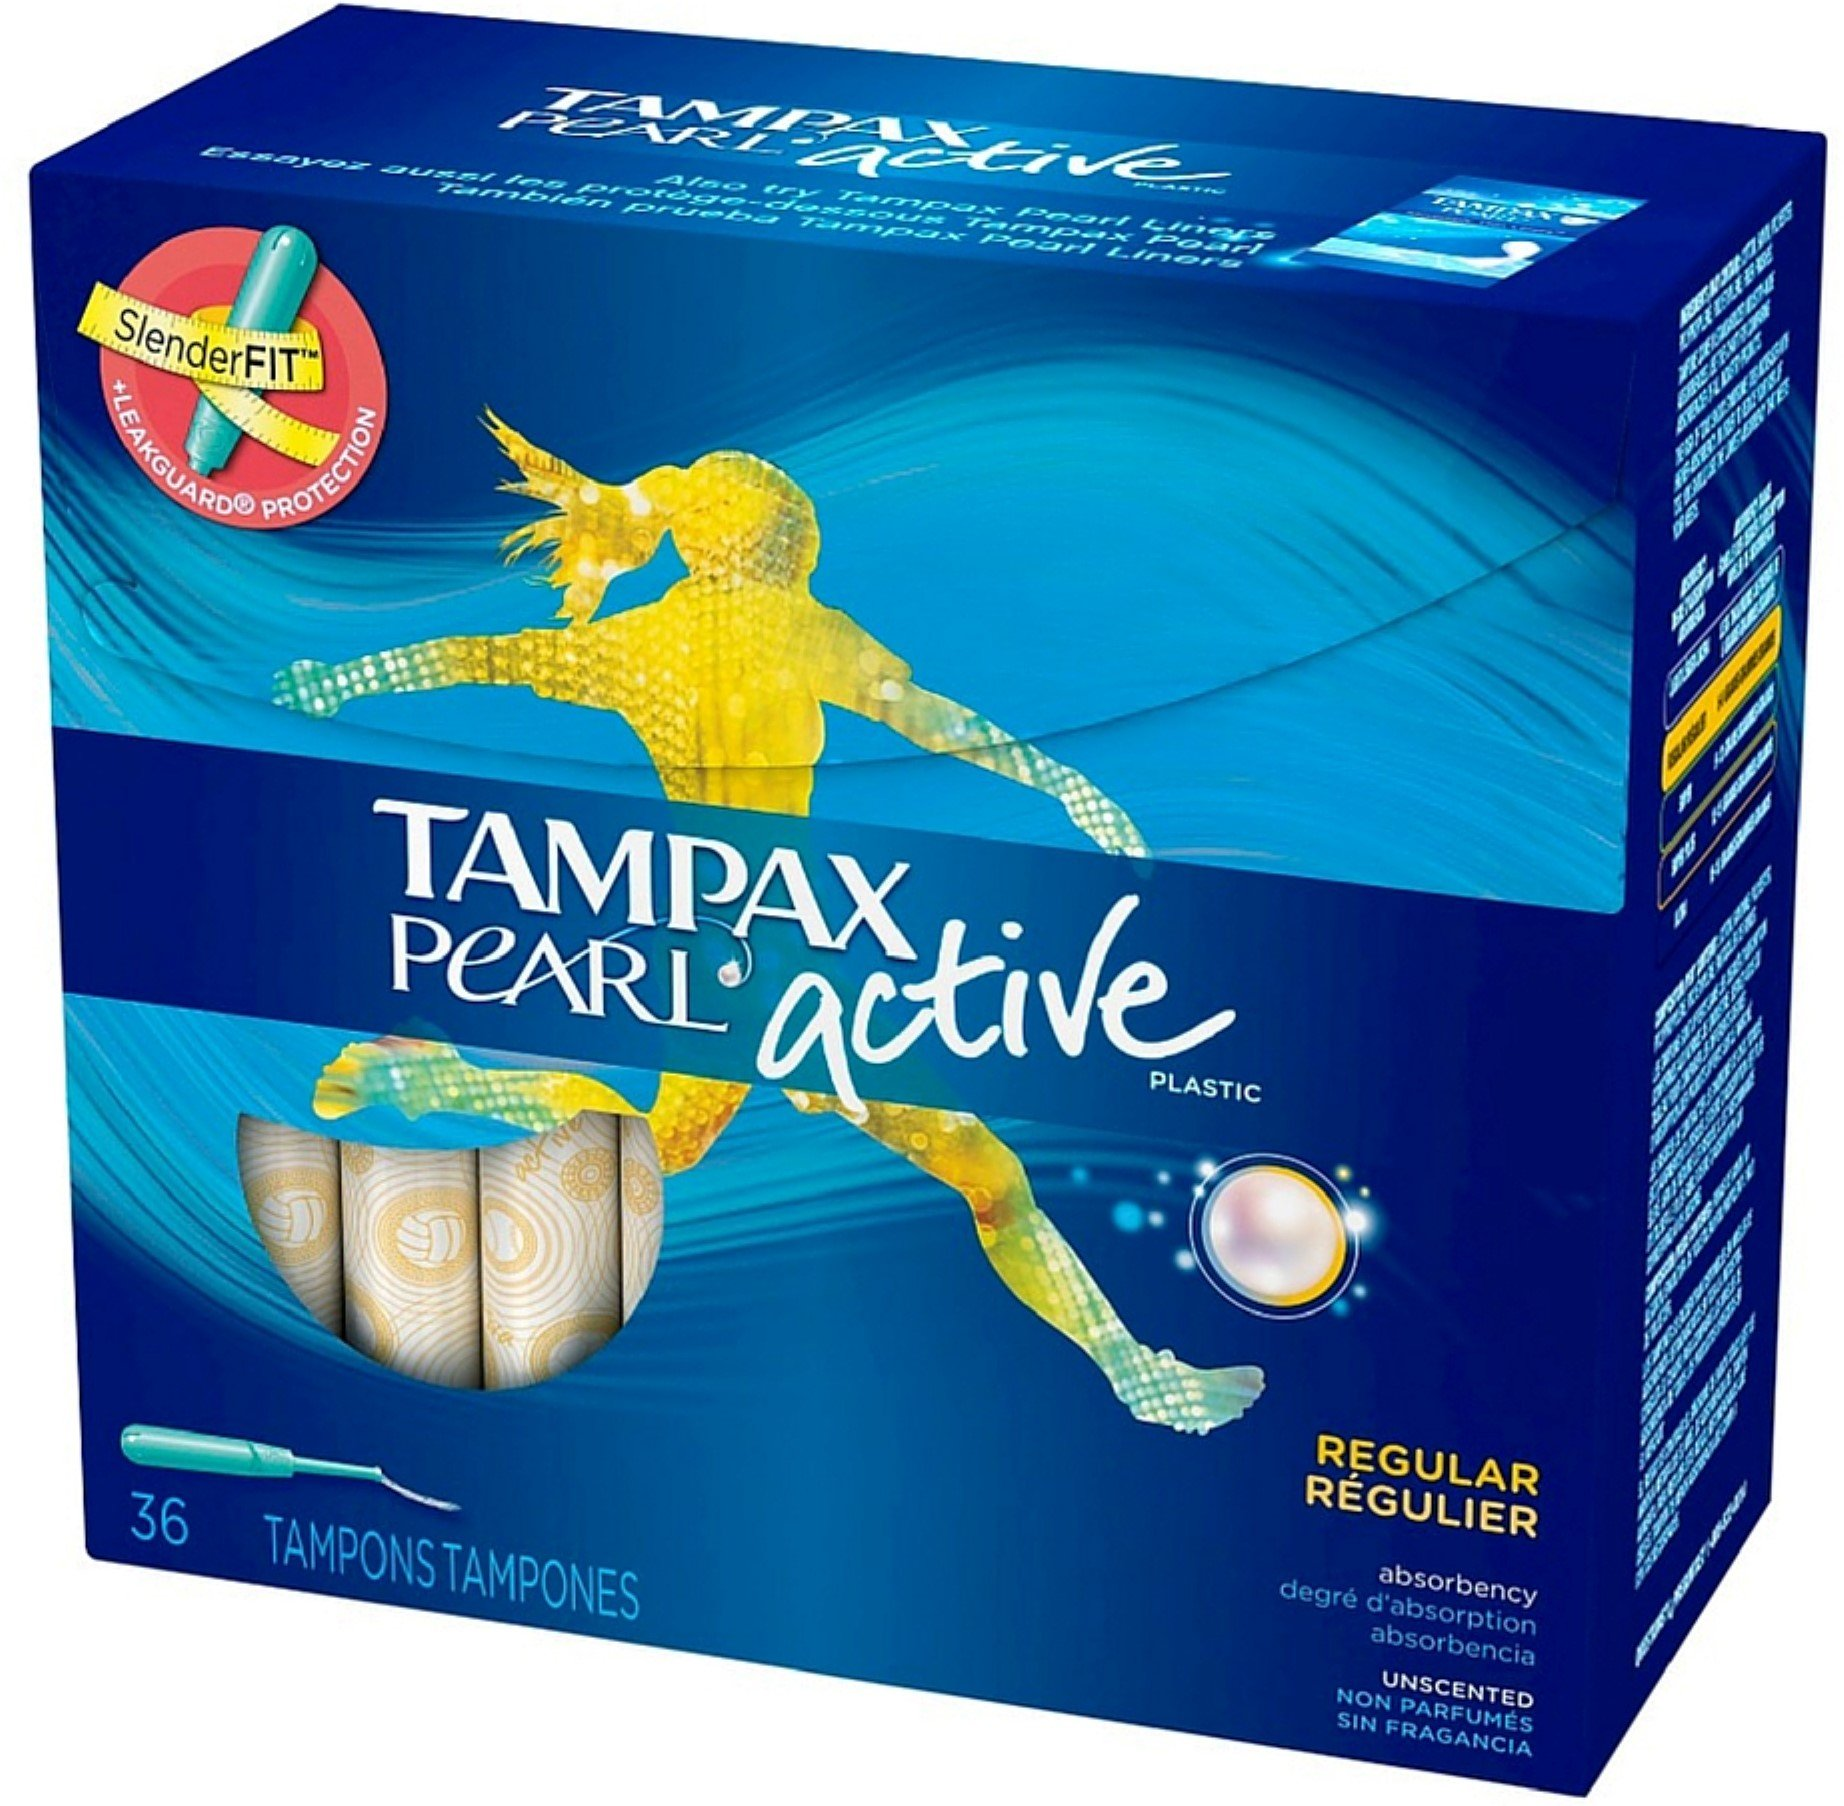 Tampax Pearl Active Plastic Unscented Tampons, Regular Absorbency 36 ea (Pack of 4) by Tampax